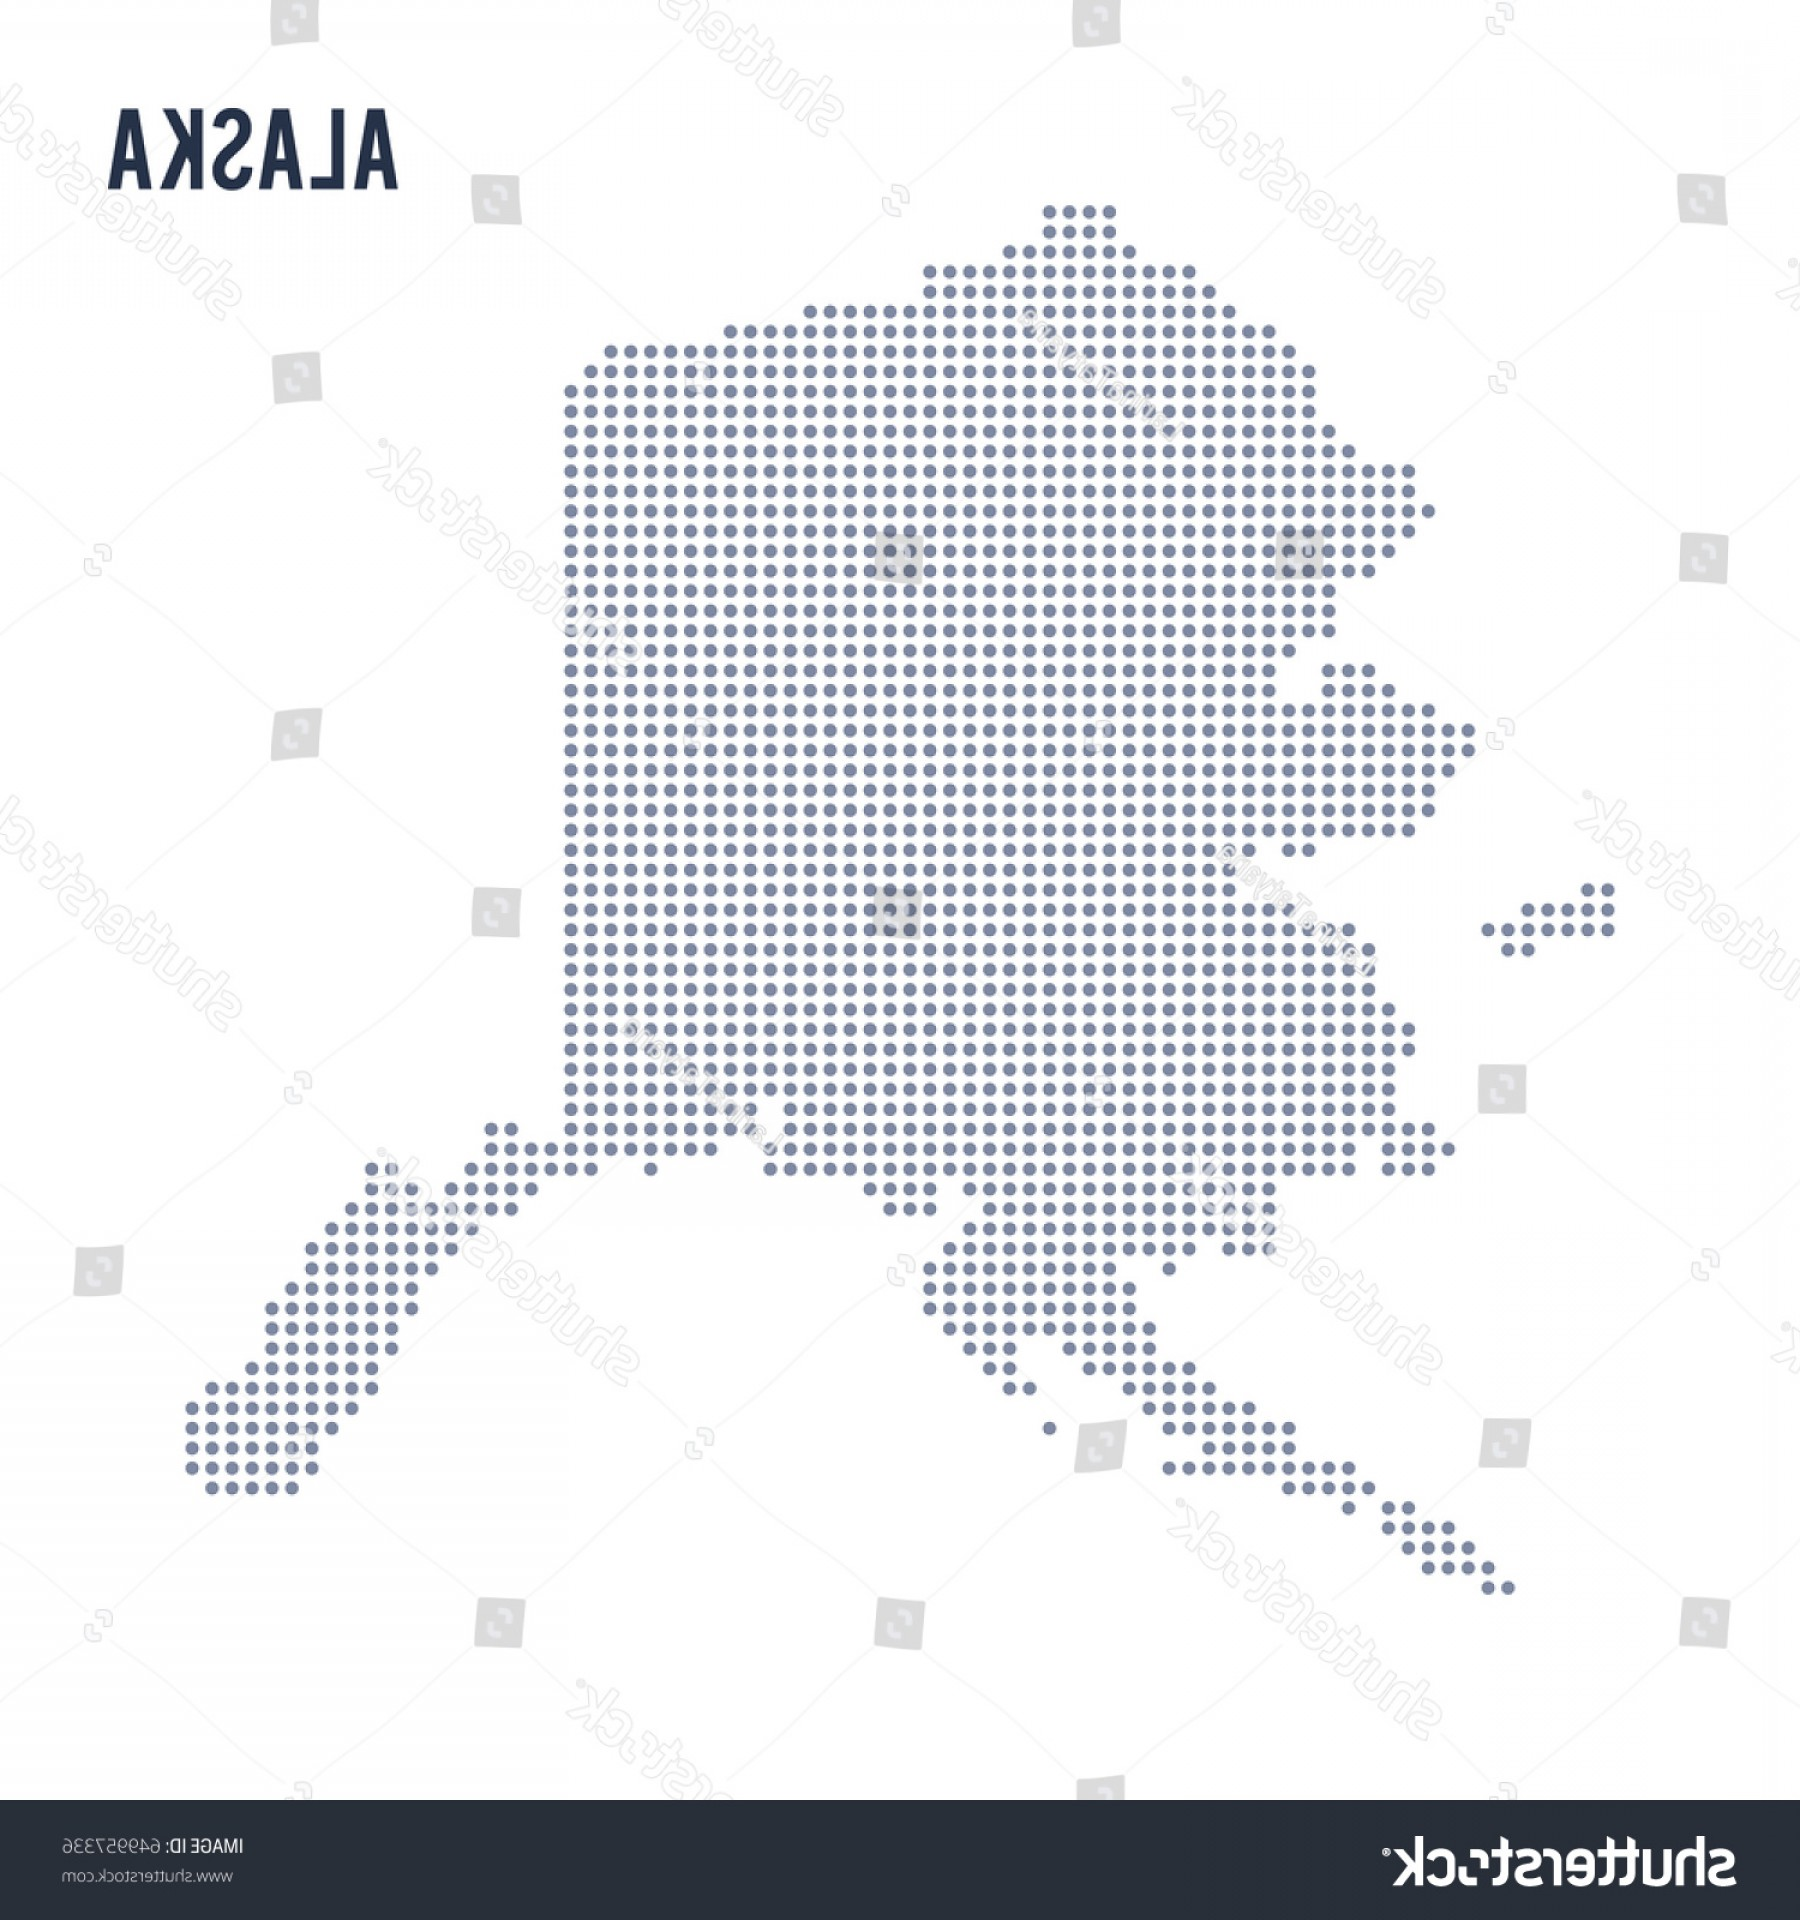 Alaska State White Background Vectors: Vector Dotted Map State Alaska Isolated